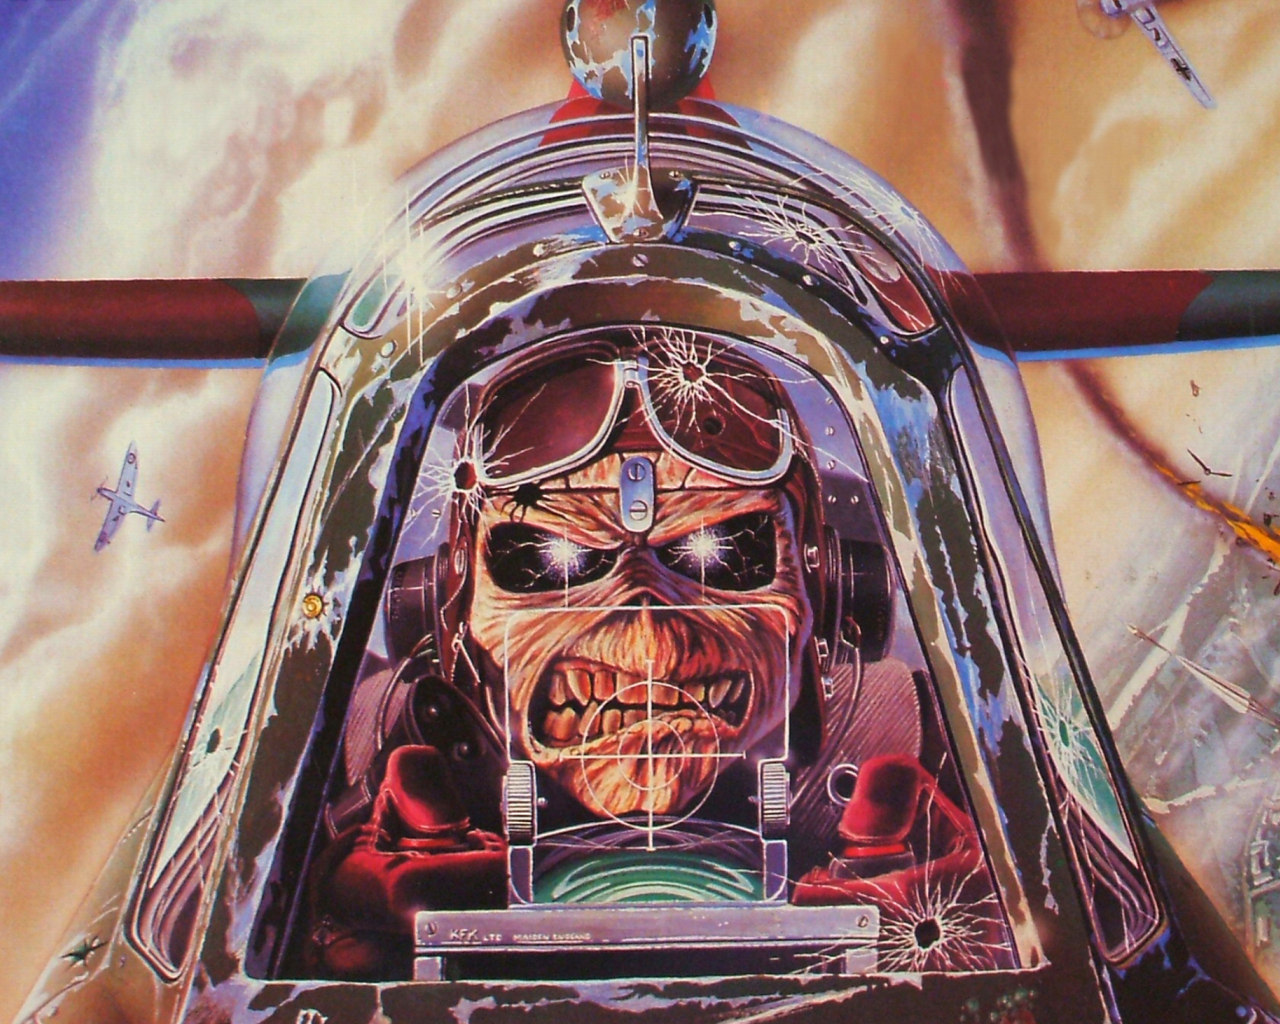 aceshigh_Iron_Maiden_Album_Artwork_by_Derek_Riggs.jpg